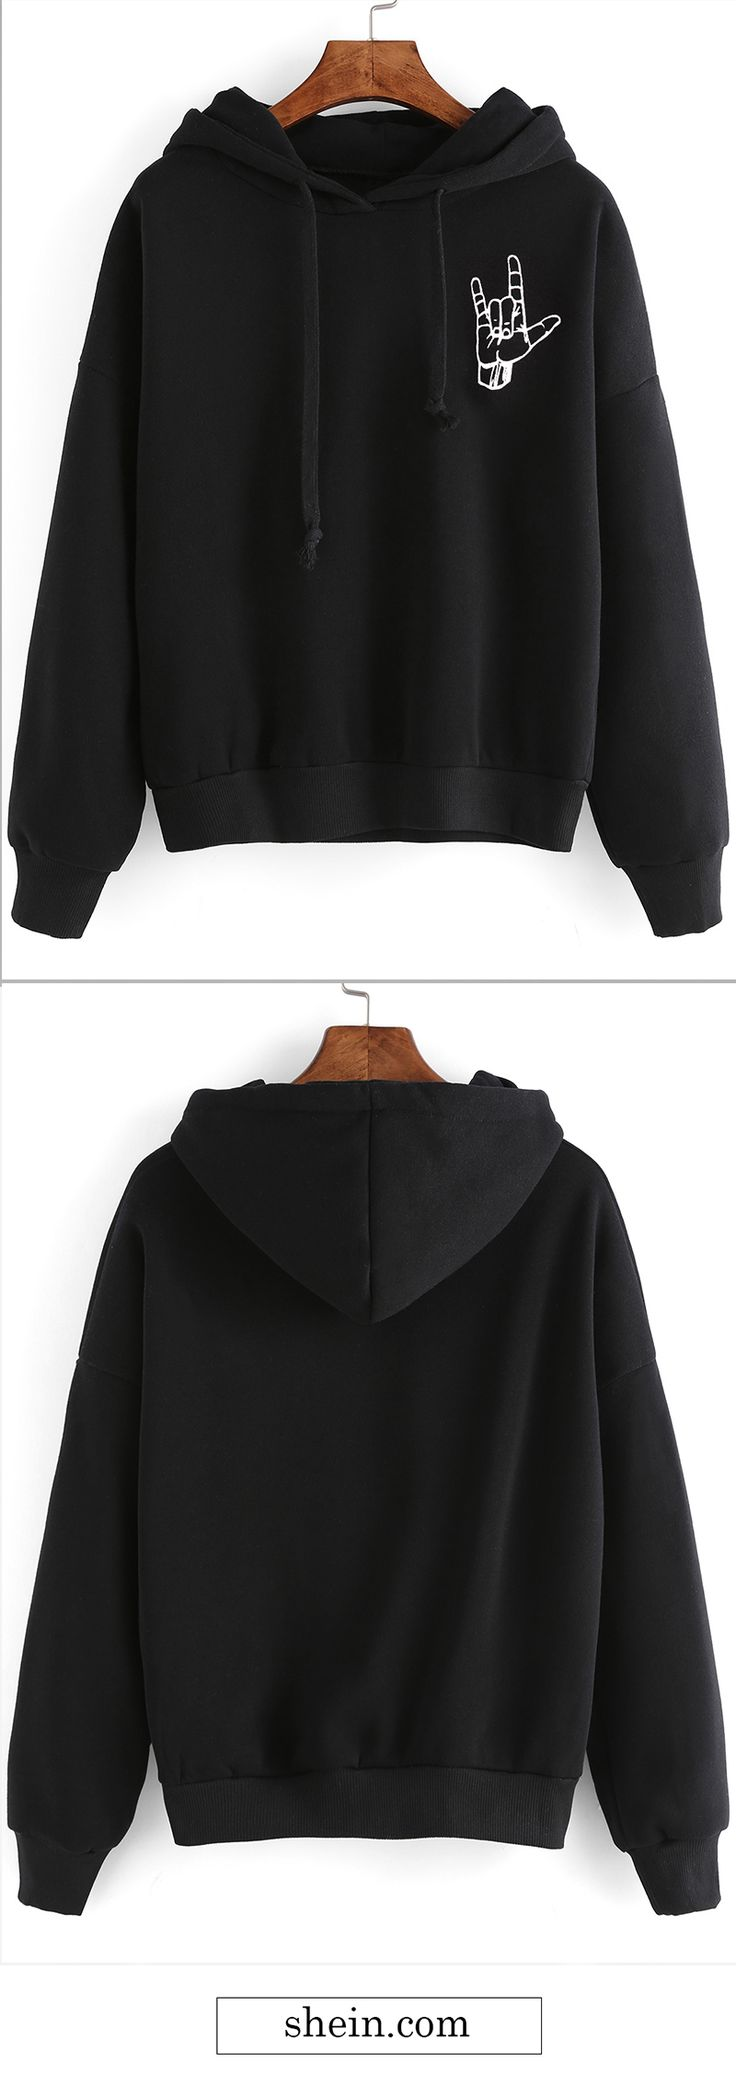 Black gesture print drop shoulder hooded sweatshirt